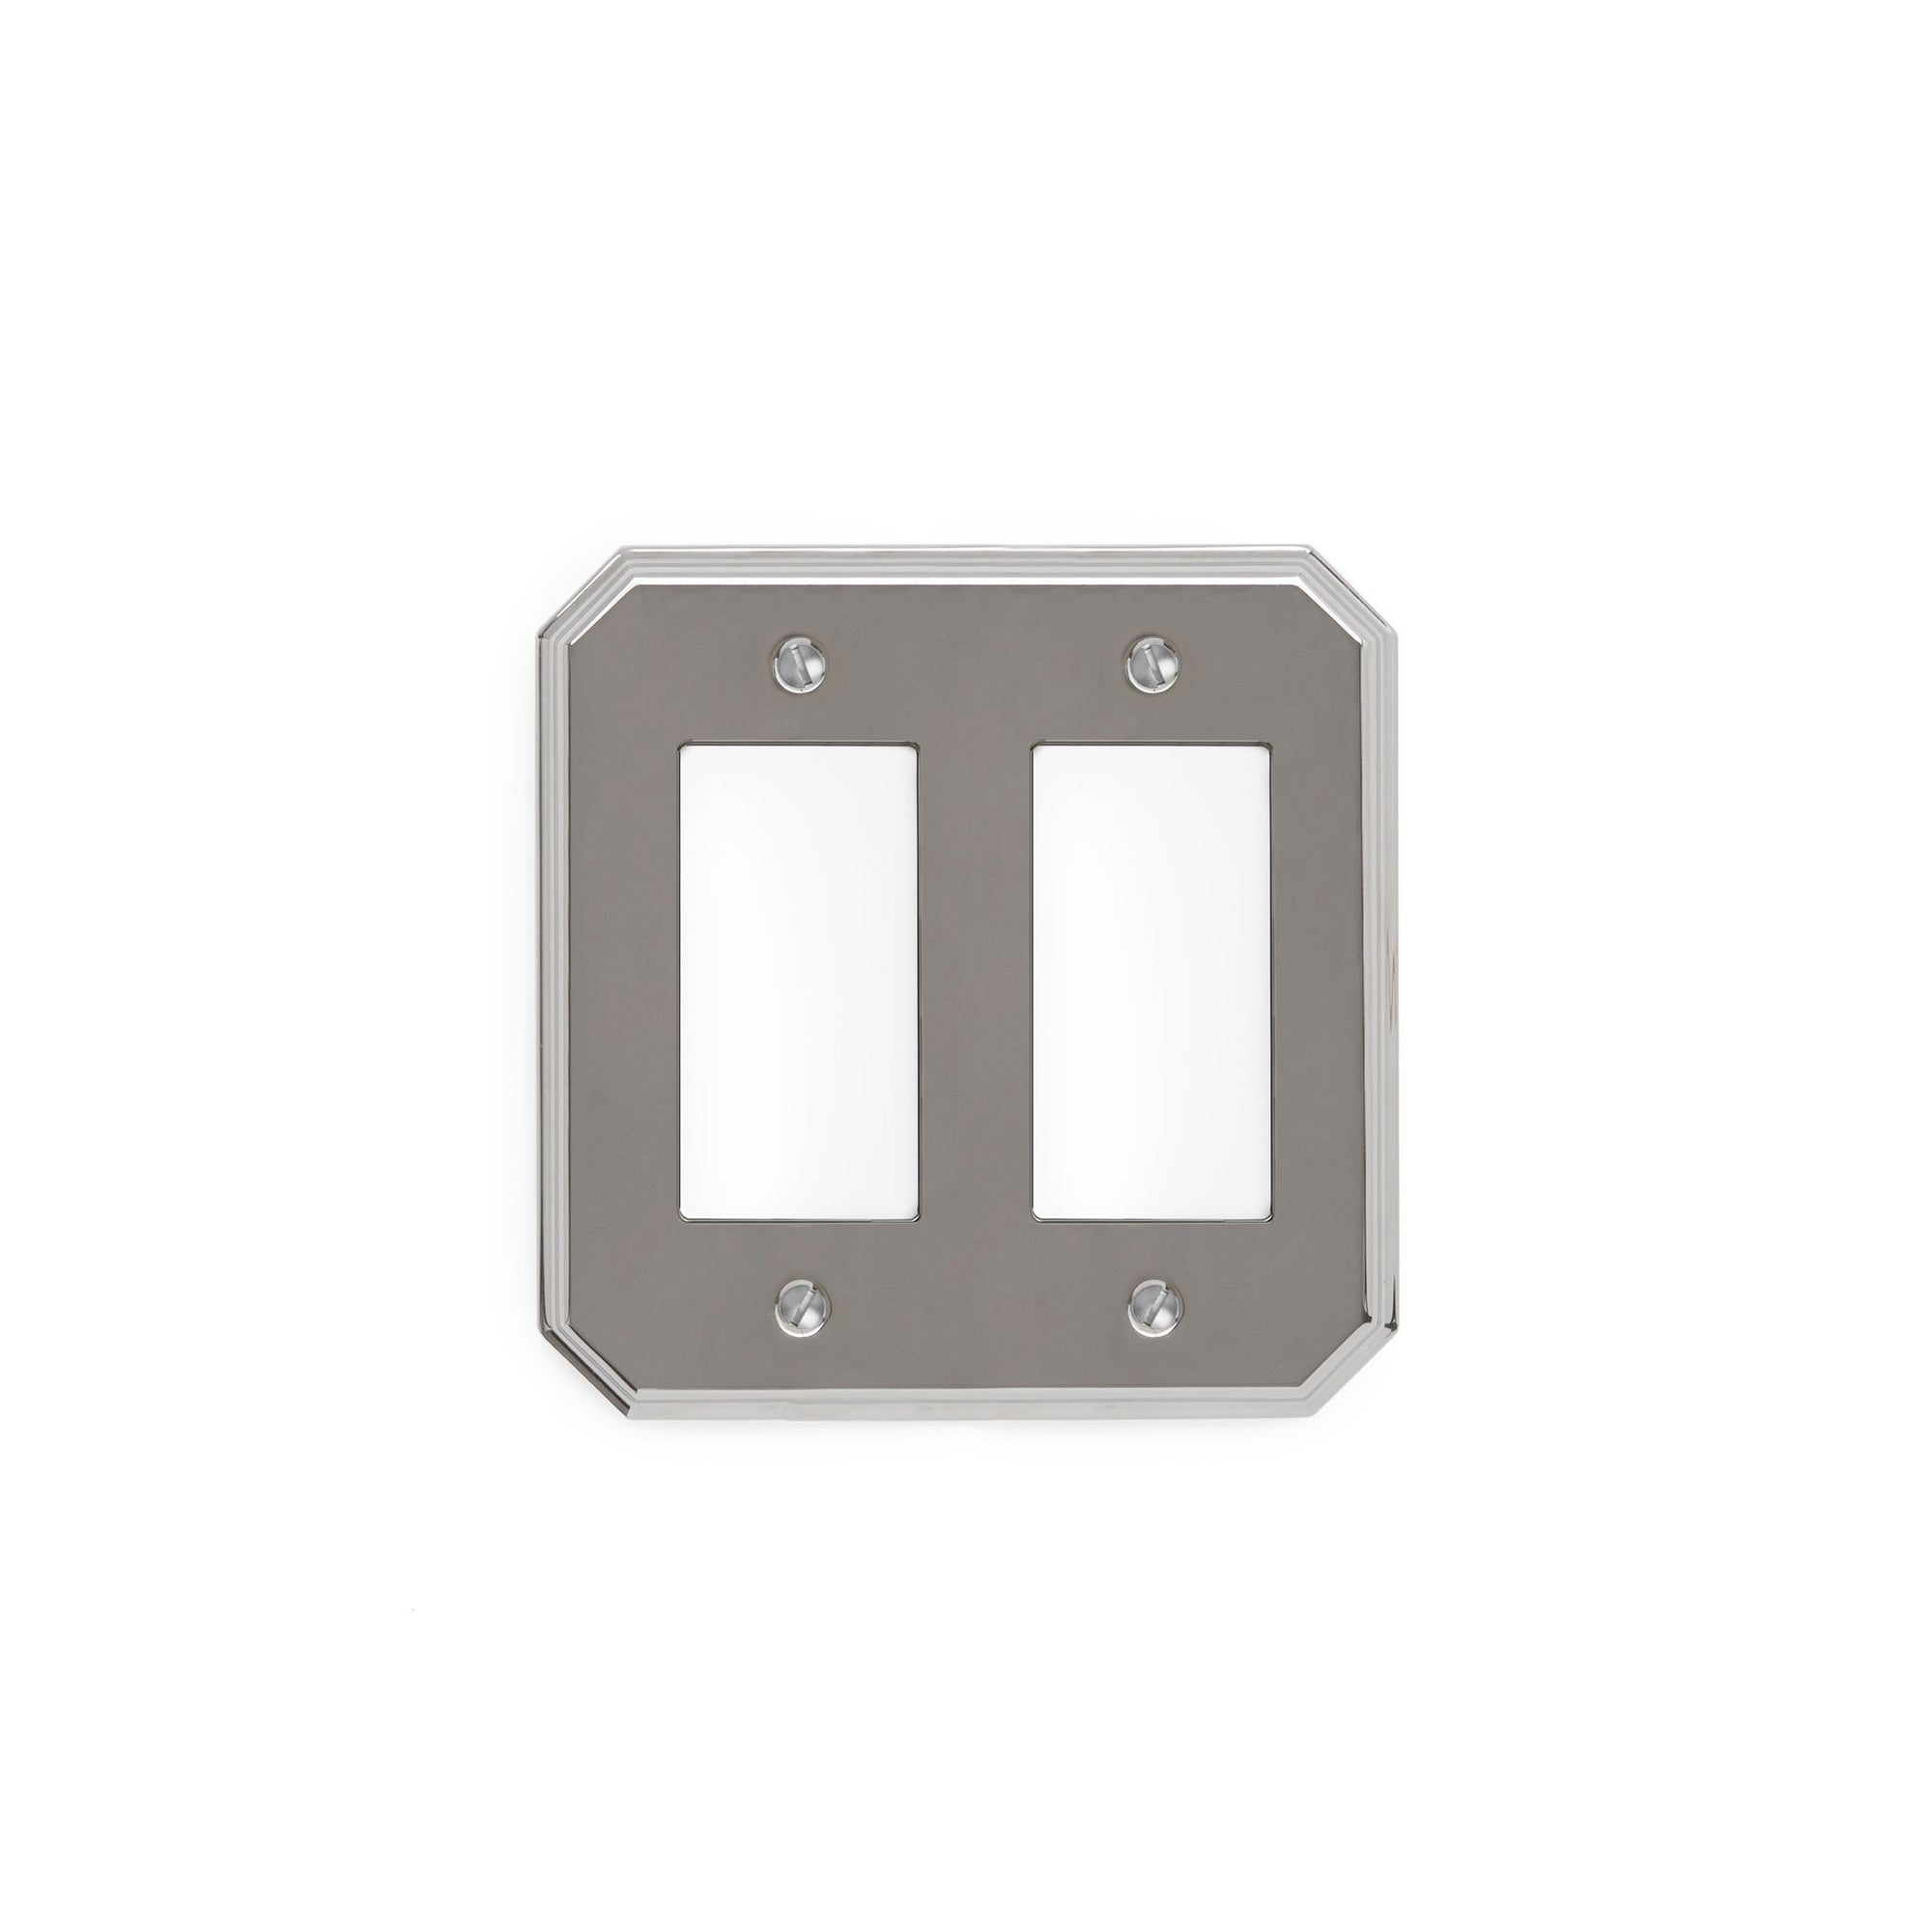 0035D-DEC-CP Sherle Wagner International Harrison Double Decora/GFI Plate in Polished Chrome metal finish